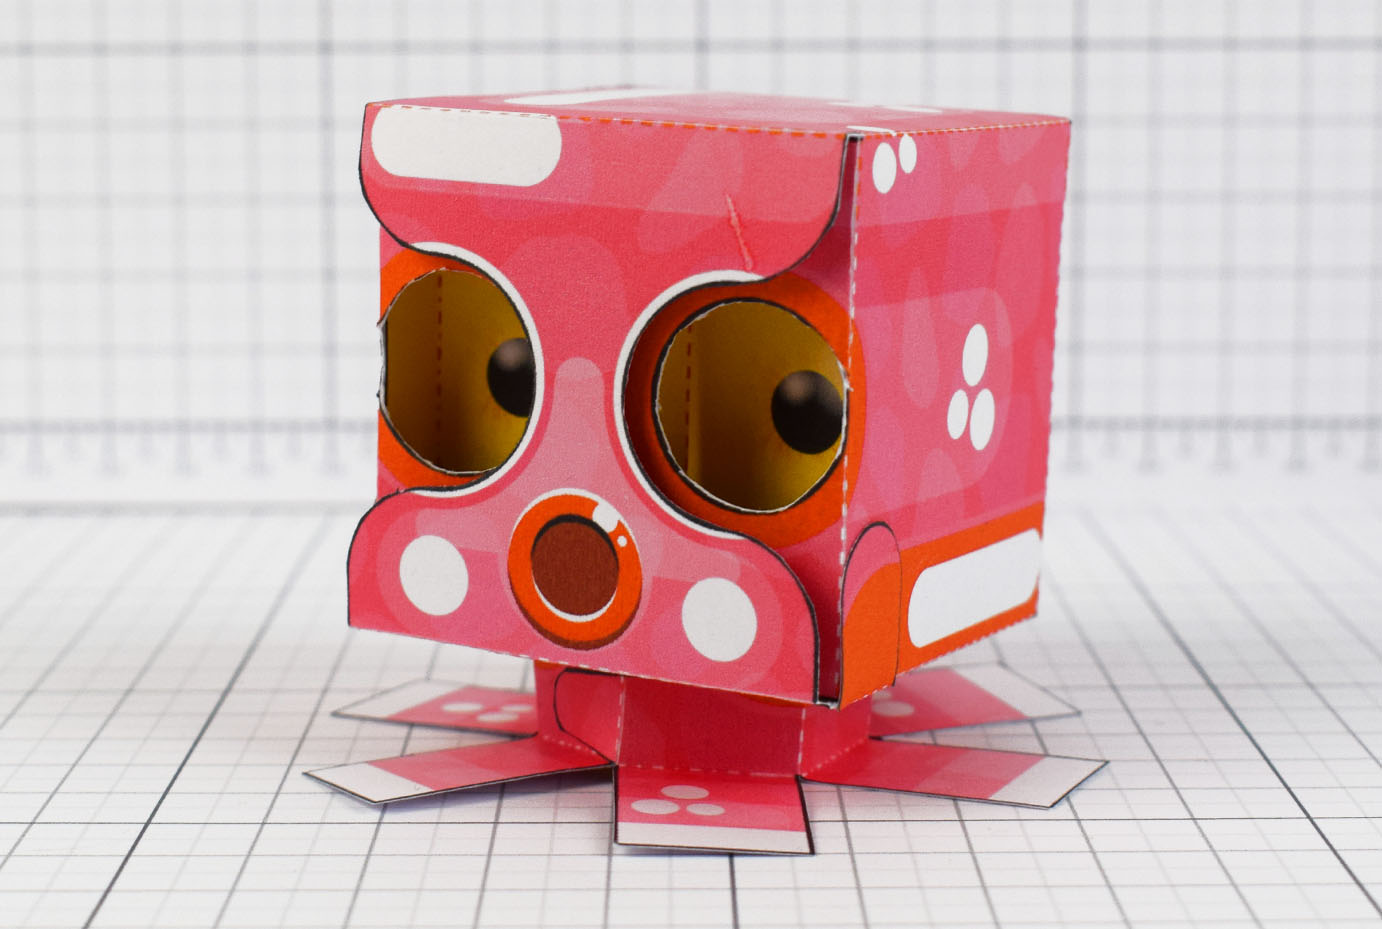 PTI - Eye Following Squid Paper Toy Optical Illusion Image - Main